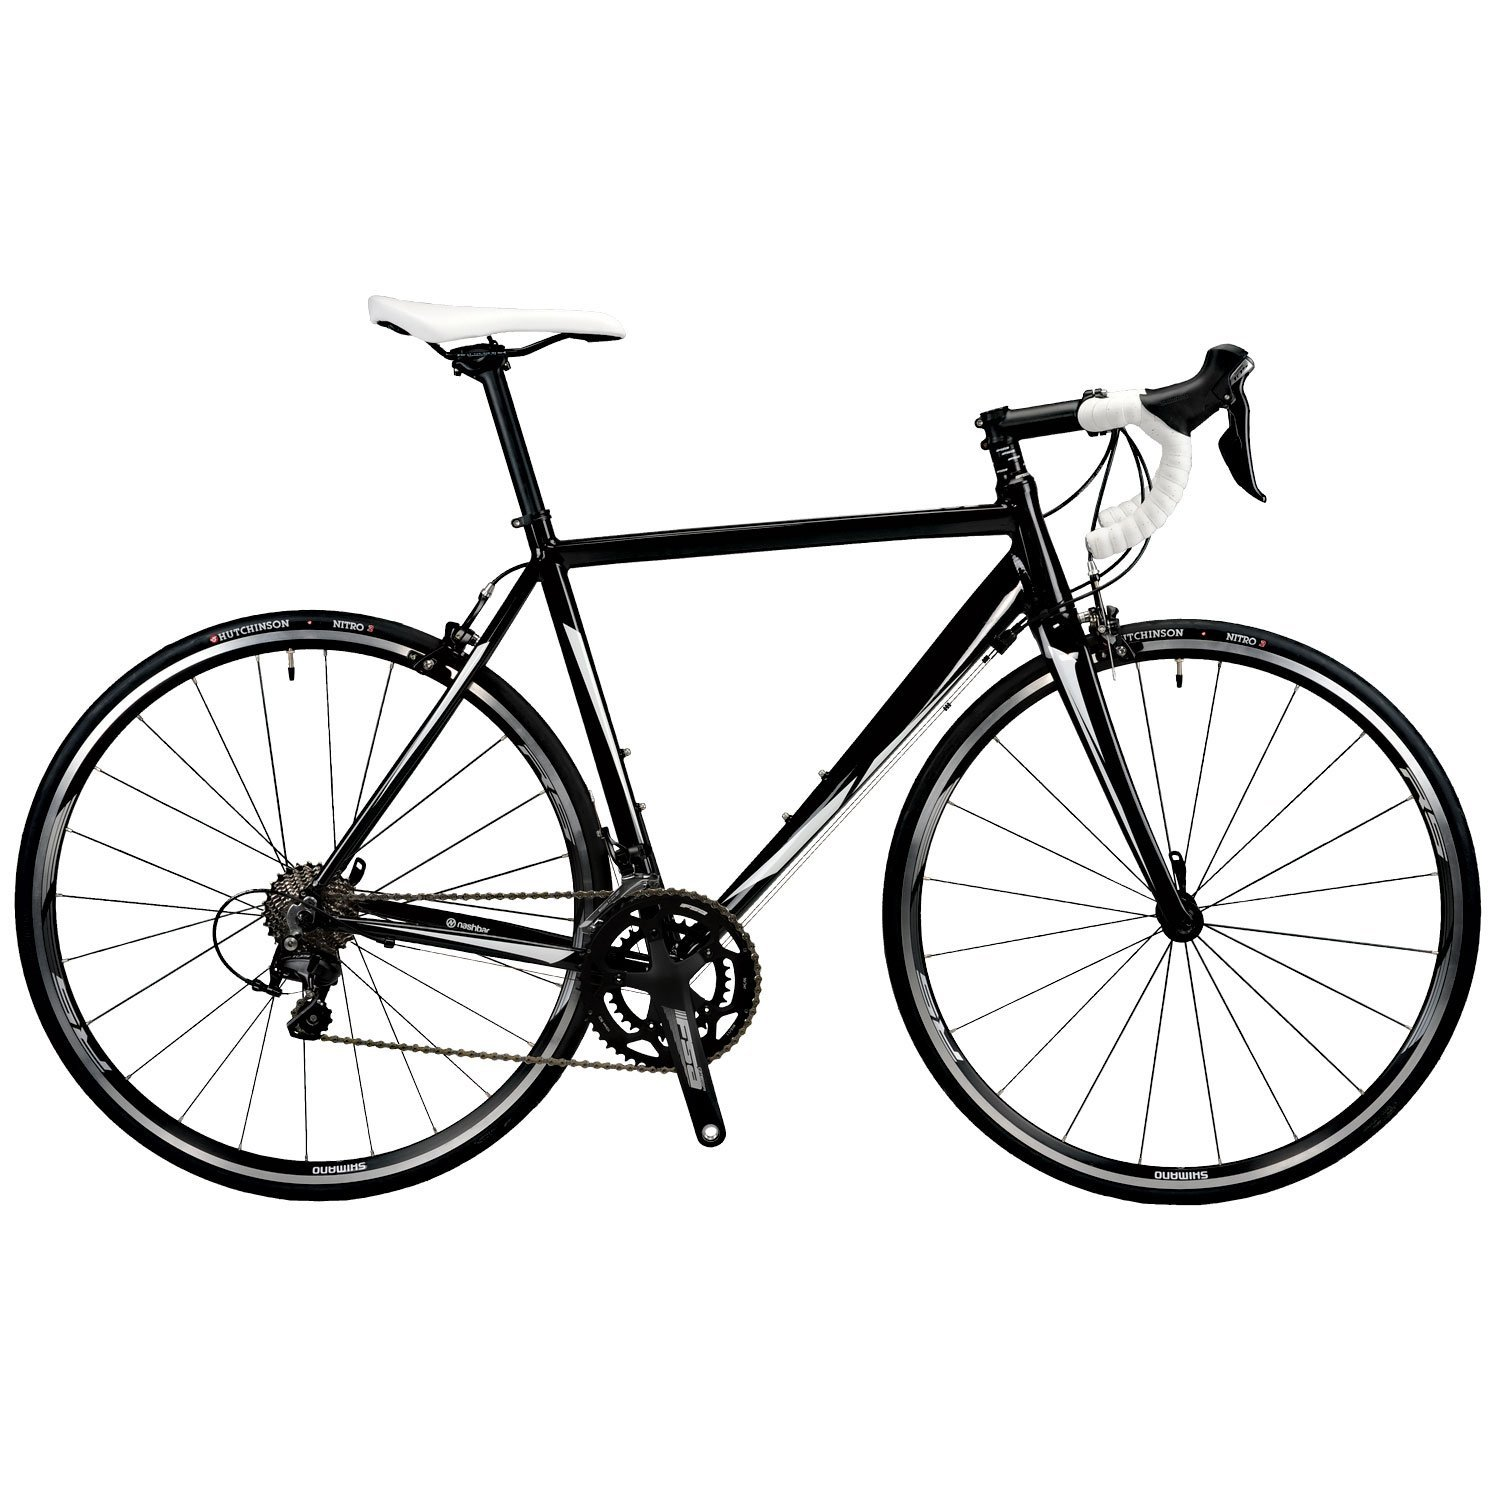 Best Road Bike Under 1500 Reviews in 2018 ~ Top Buying Guide